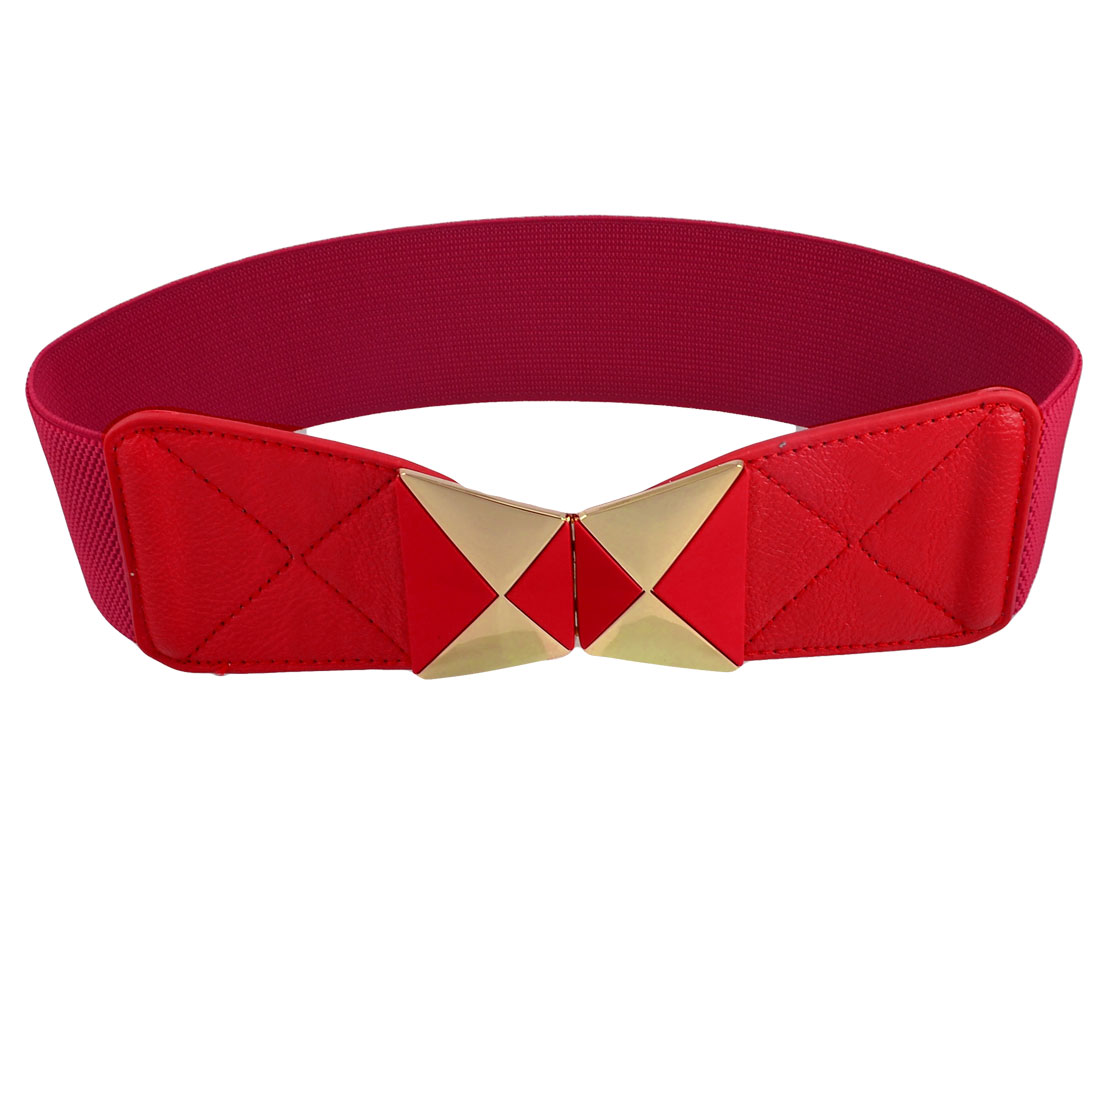 Metal Triangle Buckle Red Stretchy Cinch Band Waist Belt for Women